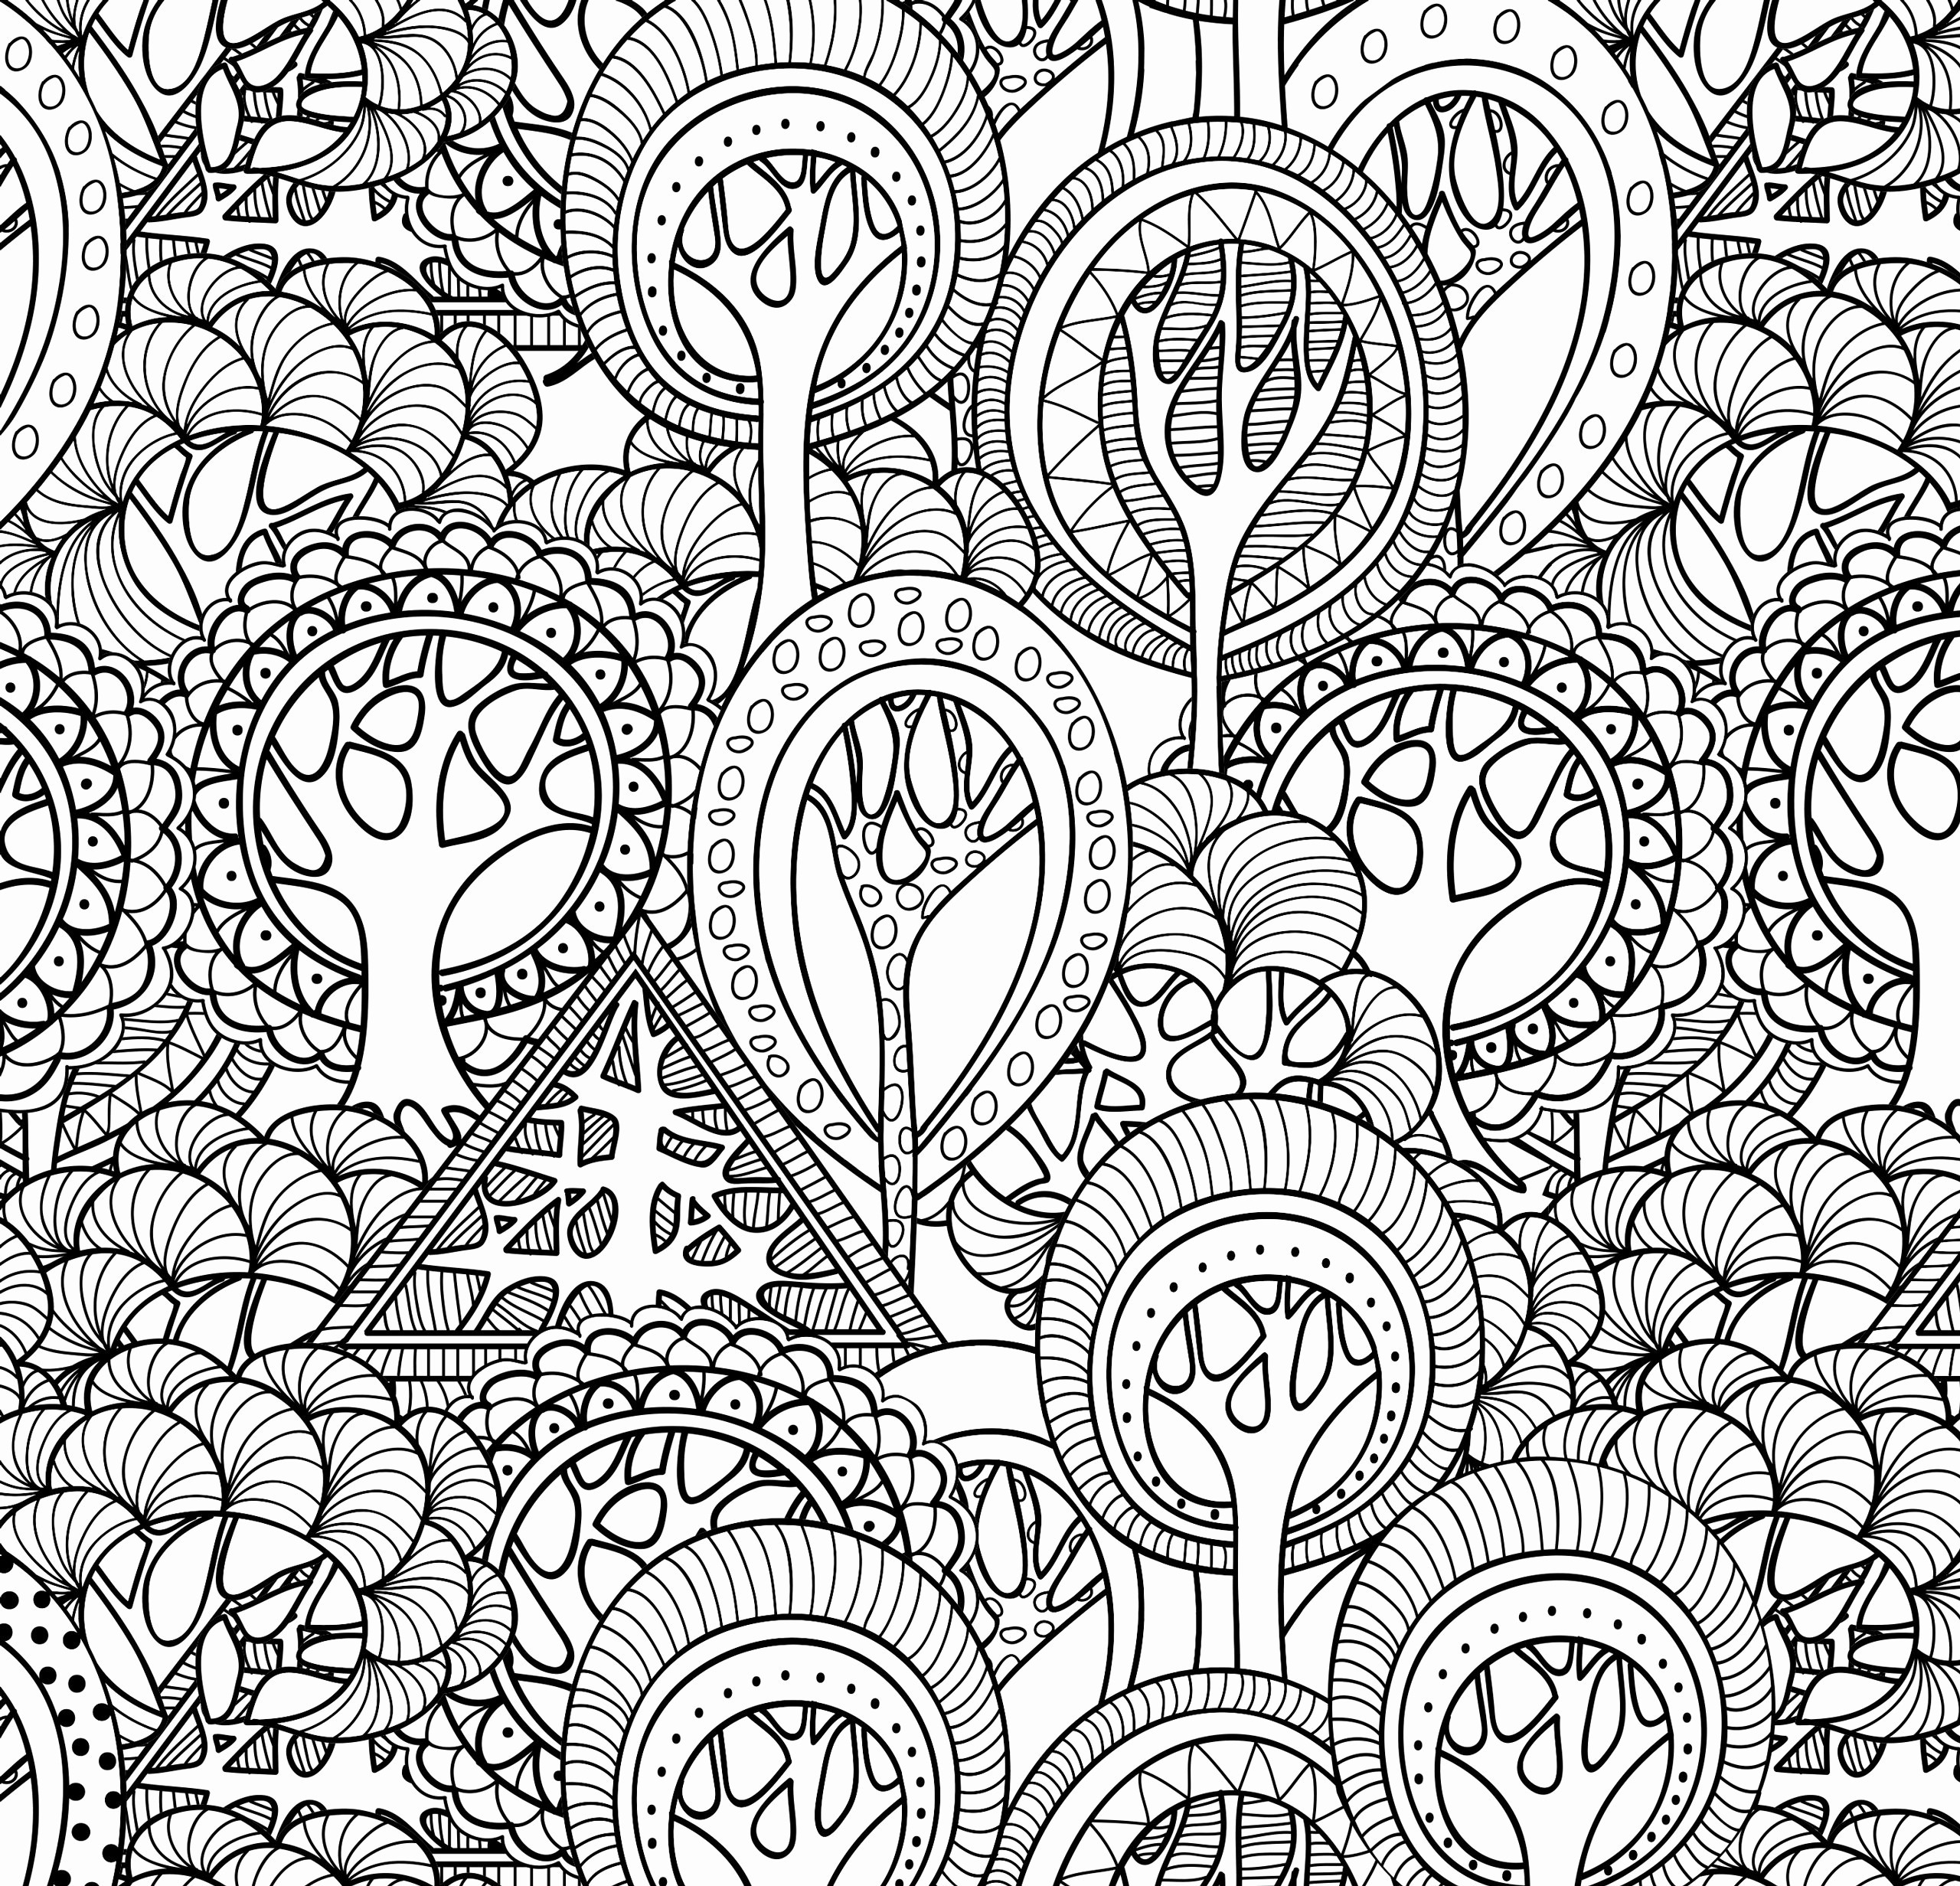 coloring templates for adults printable abstract pattern adult coloring pages 01 for adults templates coloring